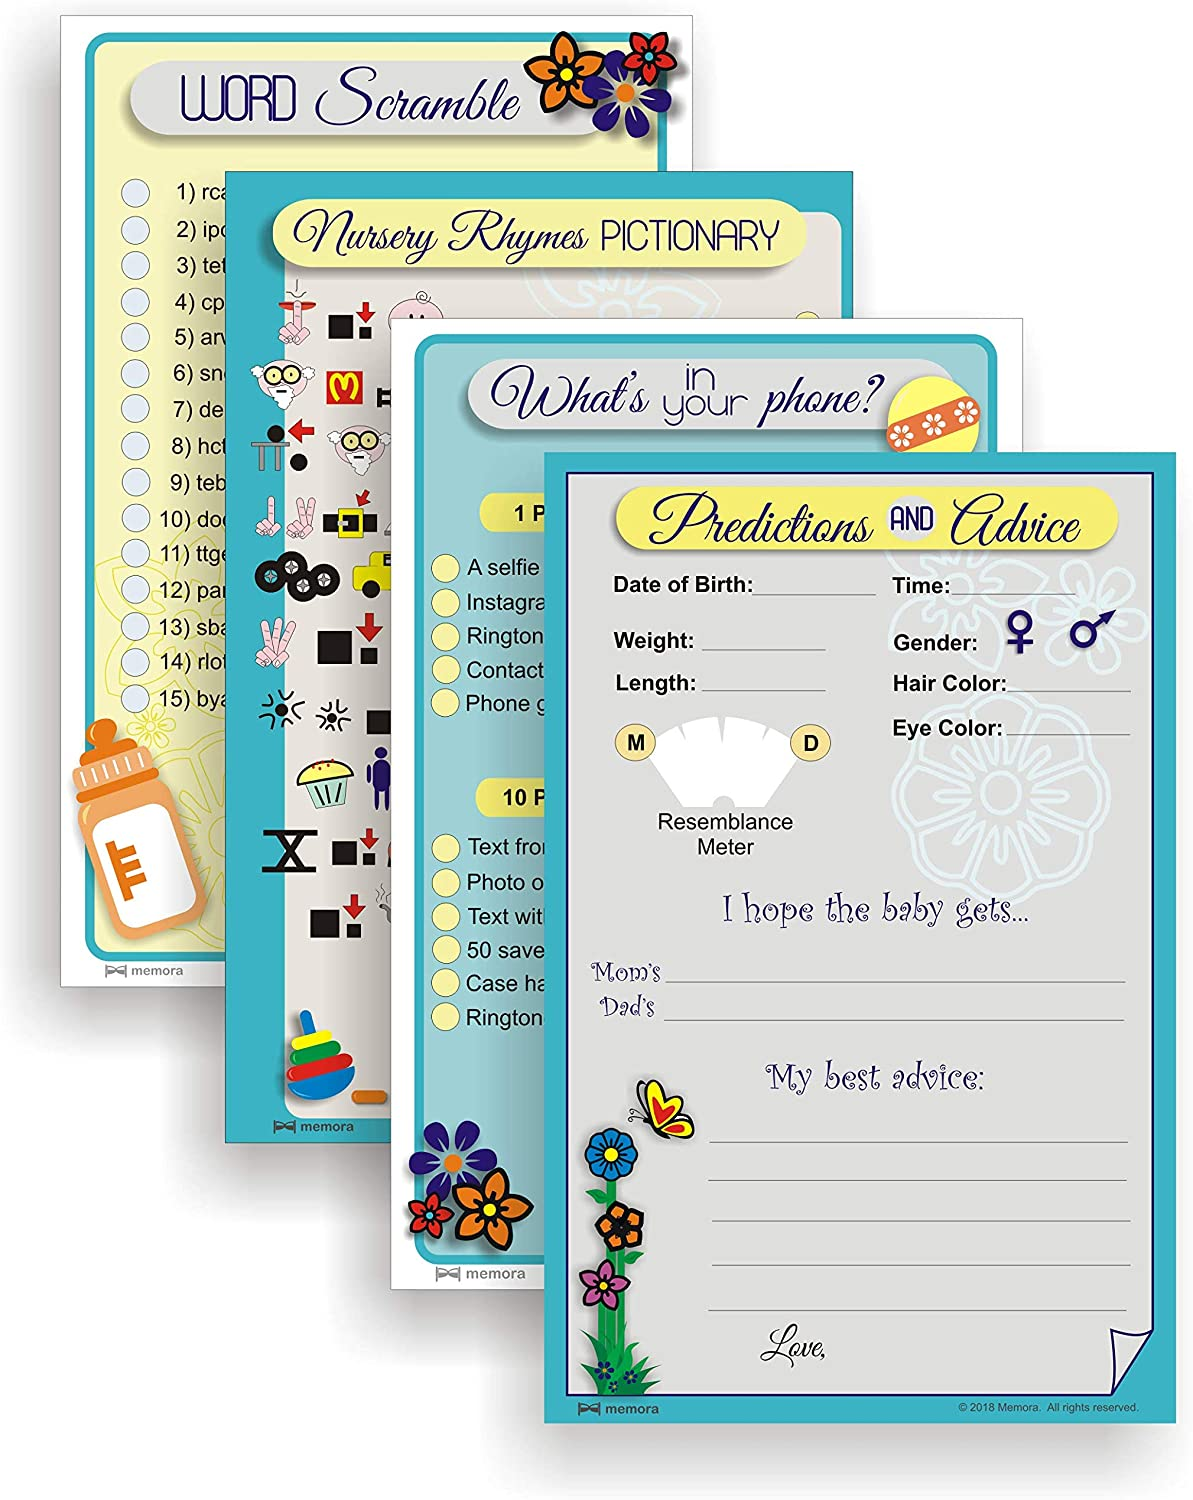 Baby Shower Games with Free Party Planning Guide - Set of 4 Games in Neutral Designs, Large 8.5  x 5.5  Cards, for 25 Guests or Teams.